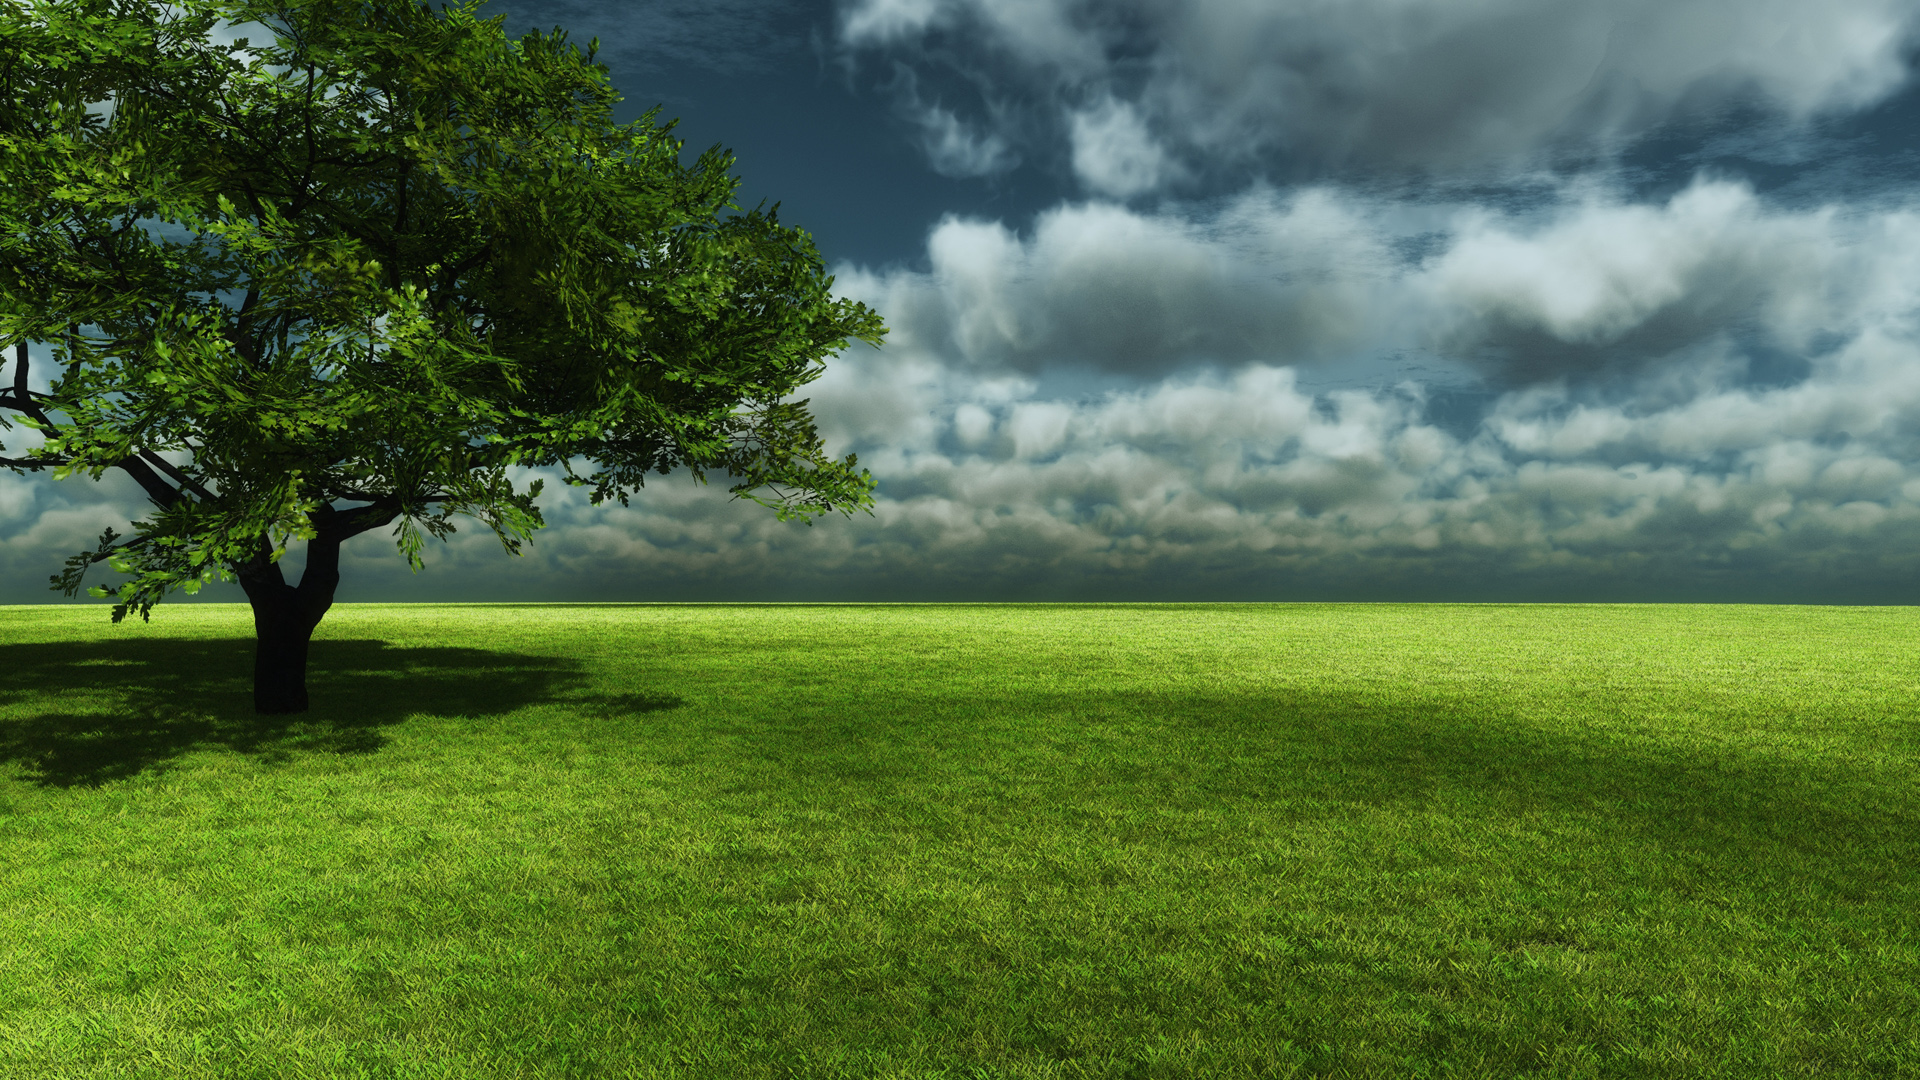 nature wallpaper full hd 1920 1080 009 1920x1080